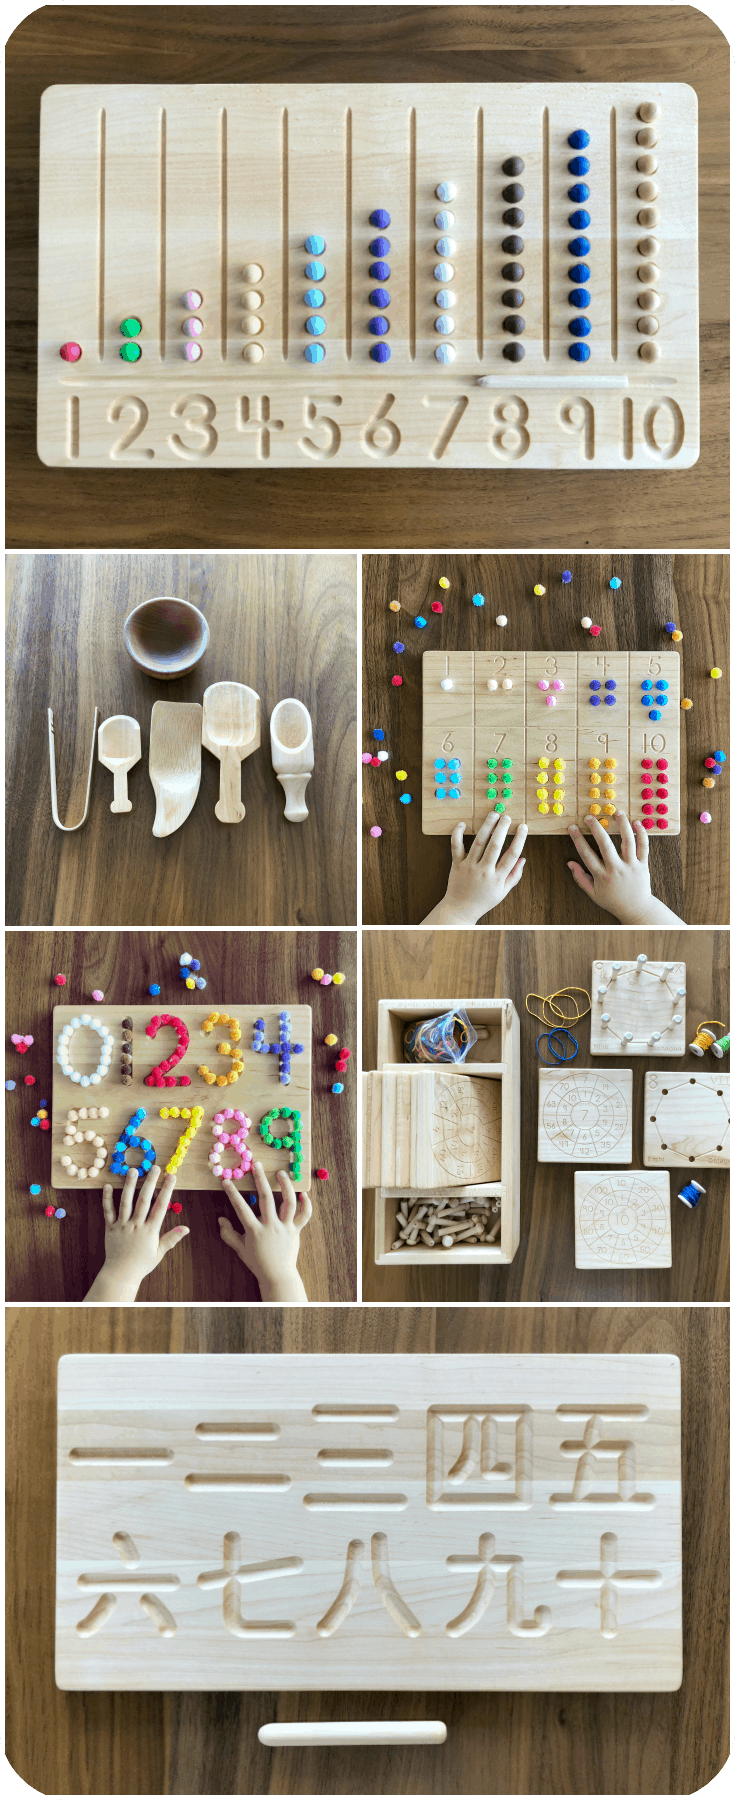 Montessori Materials and Educational Toys from Etsy! | Preschool | Kindergarten | First Grade | Toddler | Fine Motor Skills | Math and Counting Activities | Chinese | Korean | Hands-on learning for kids | Homeschool